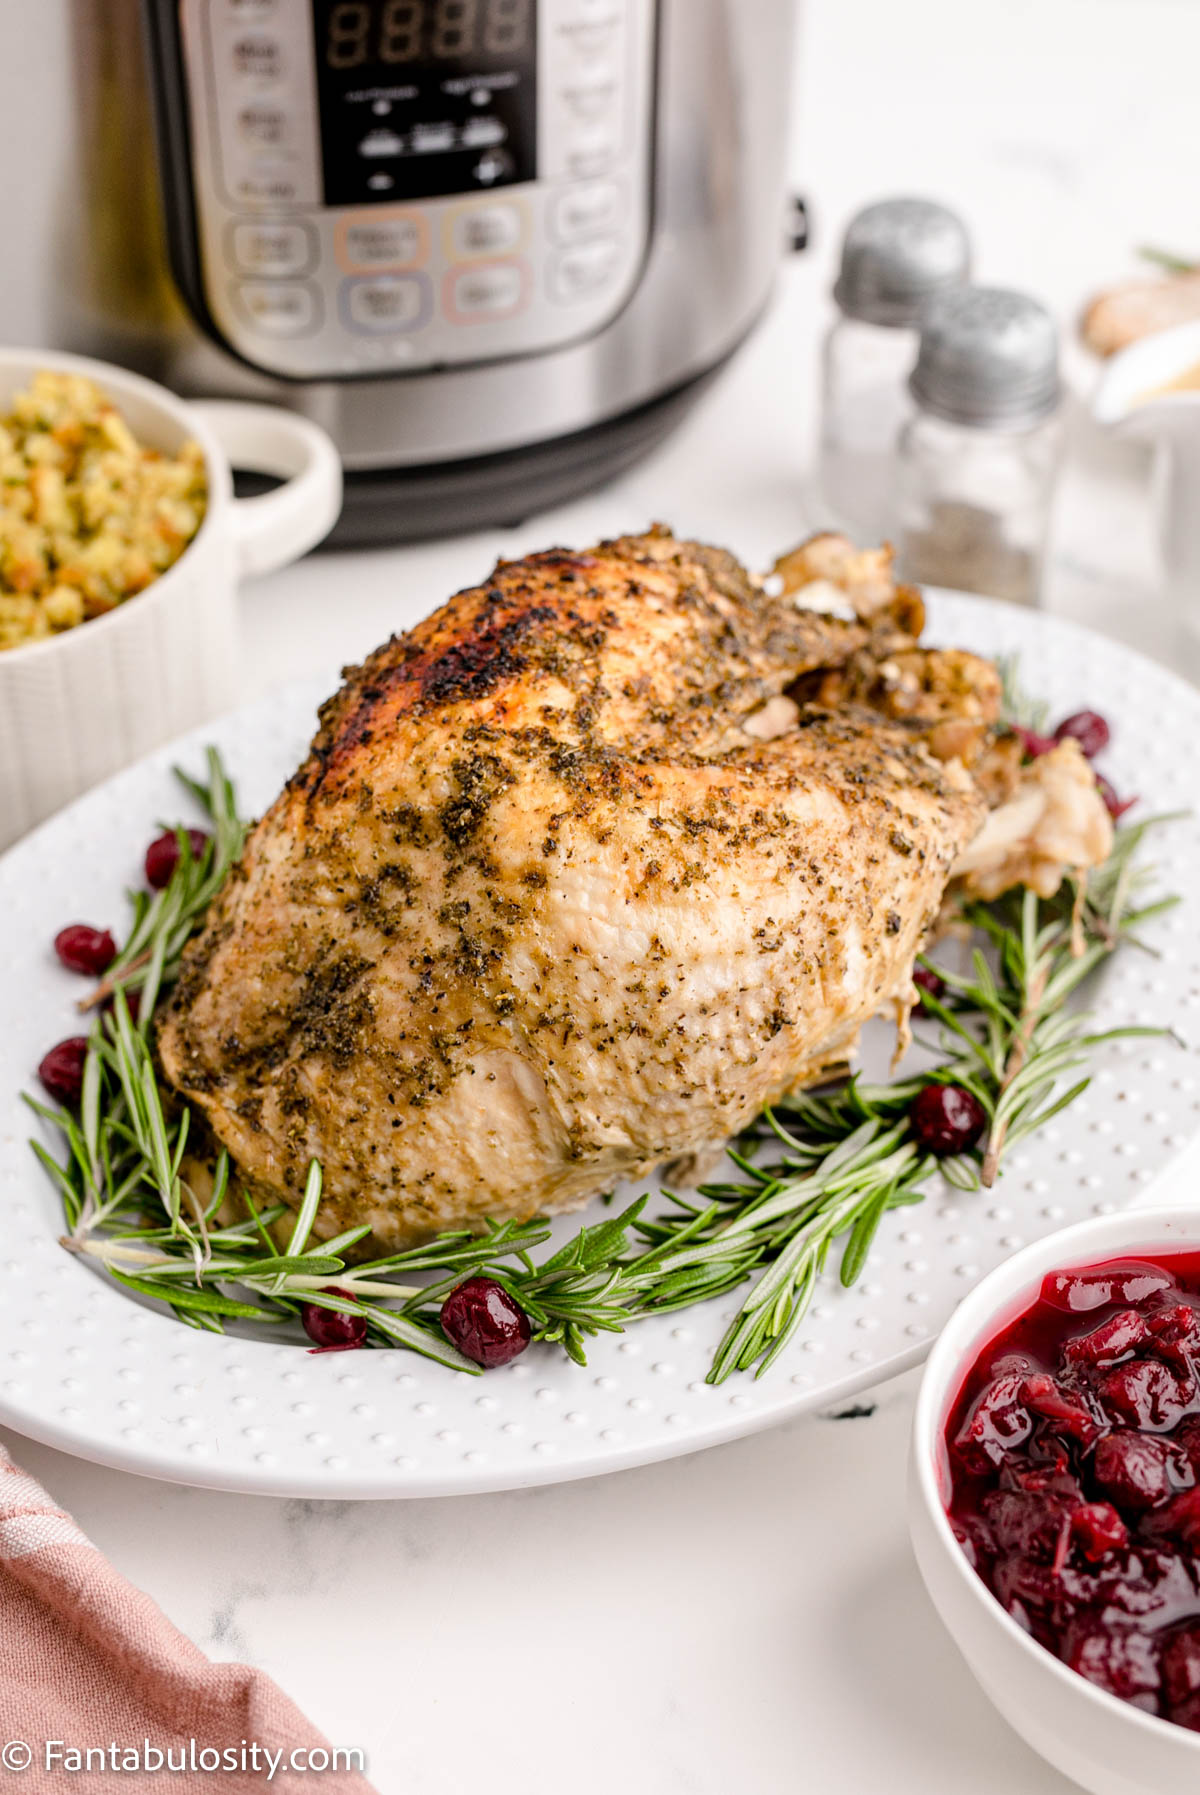 Instant Pot Turkey Breast on plate with garnishes